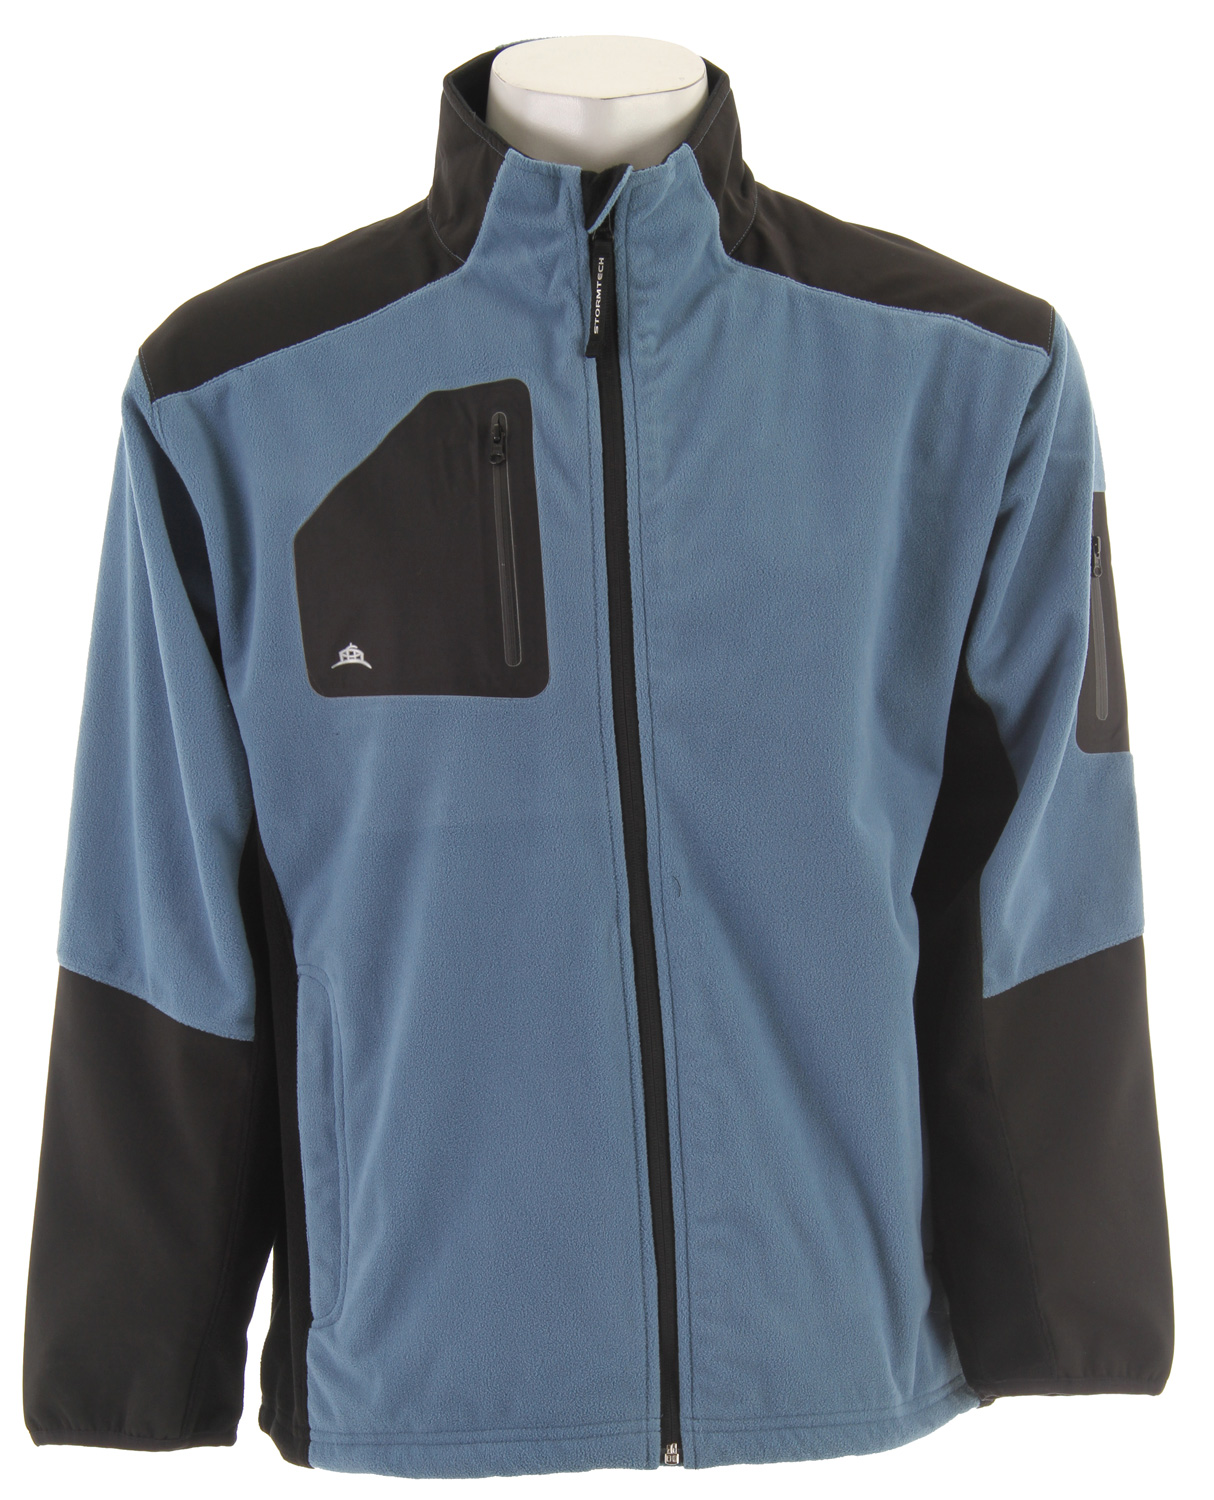 For a more technical look and feel, the Denali Performance Fleece has waterproof panels on the shoulders and arms. The adjustable draw cord at the hem allows you to cinch it, so it stays put while shoveling the late March snow.Key Features for the Stormtech Denali Performance Fleece Jacket: 3,000mm waterproof/3,000g/m2 breathability Adjustable Drawcords at Hem Pocket with Audio Port Zipper Garage at Neck Laser-Cut Bonded Sleeve Pocket - $35.95